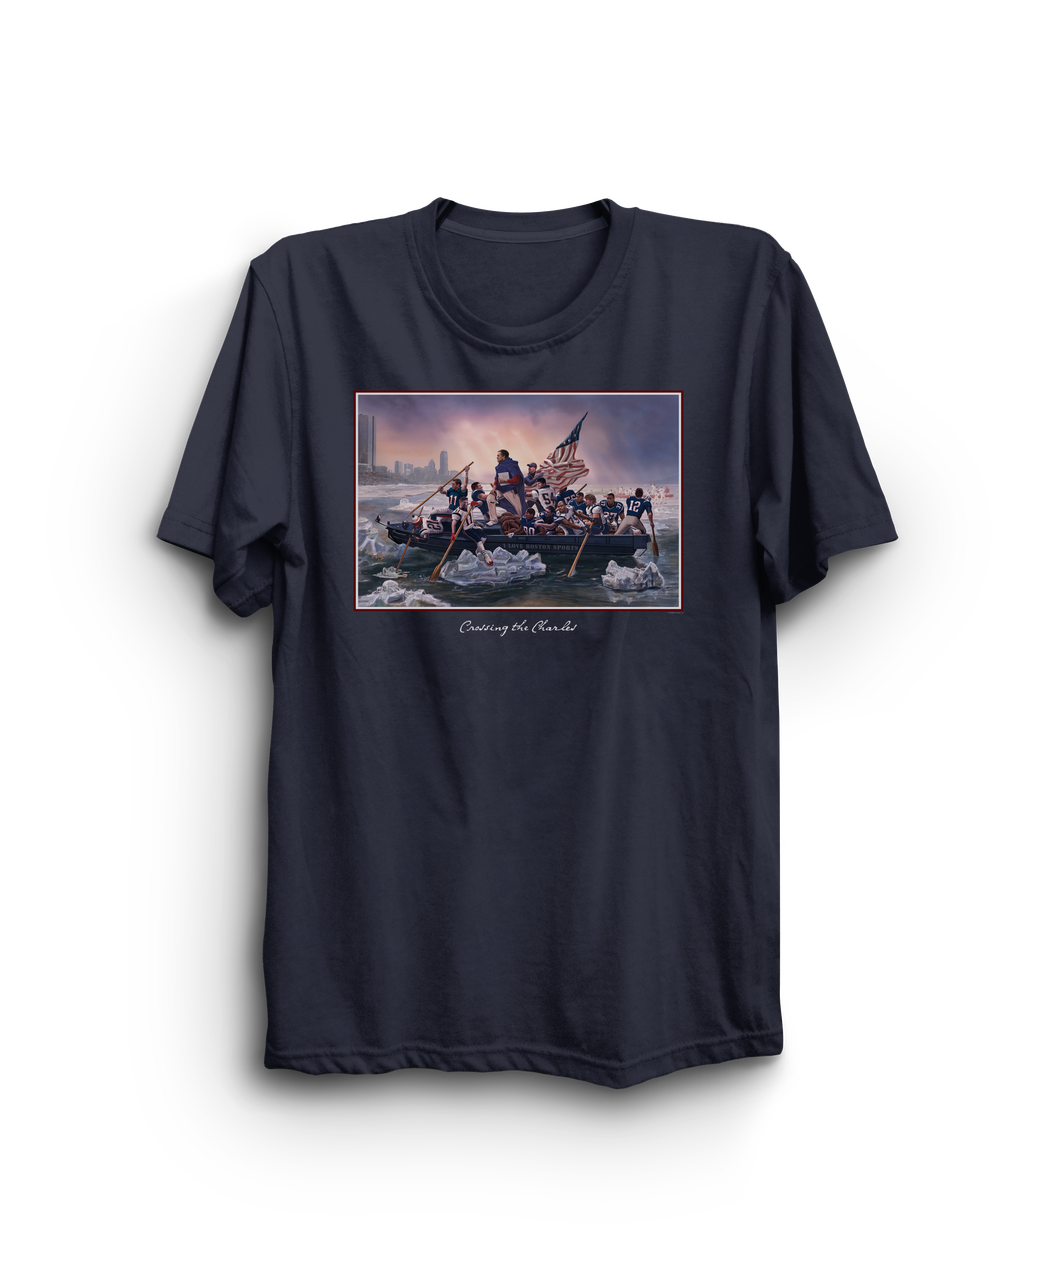 Crossing the Charles T-shirt